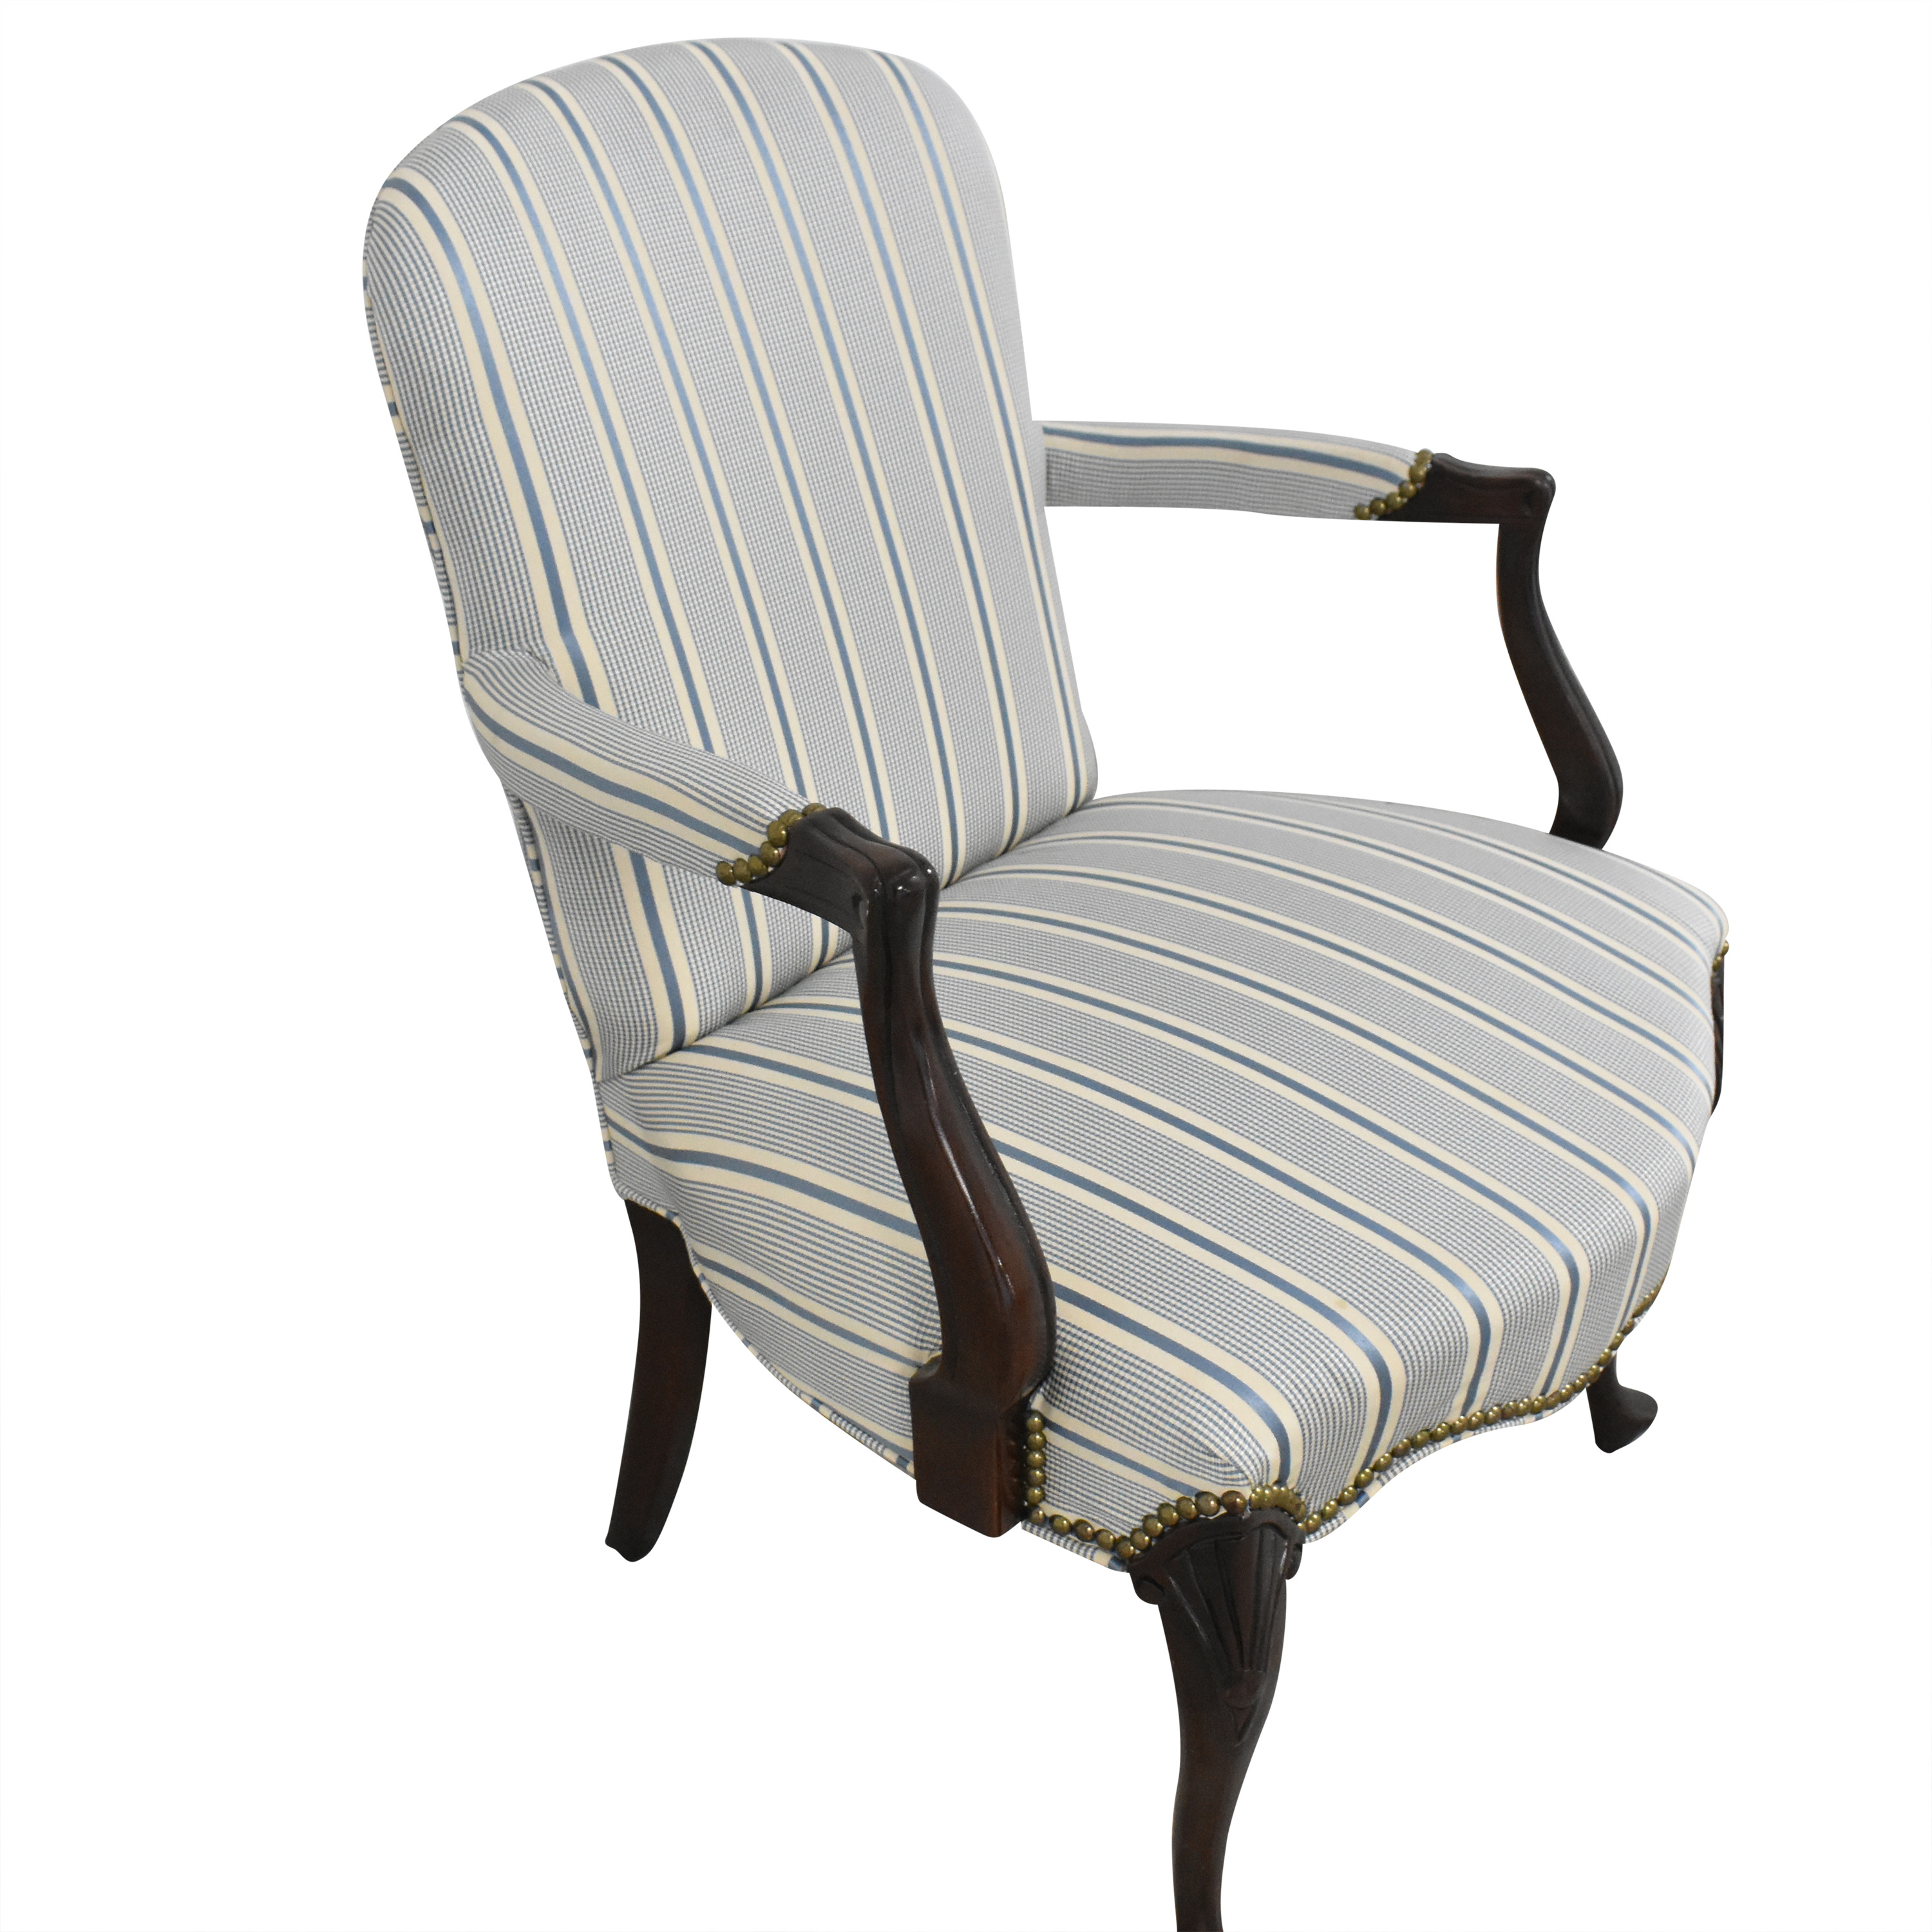 buy Hickory Chair Hickory Chair Upholstered Accent Chair online